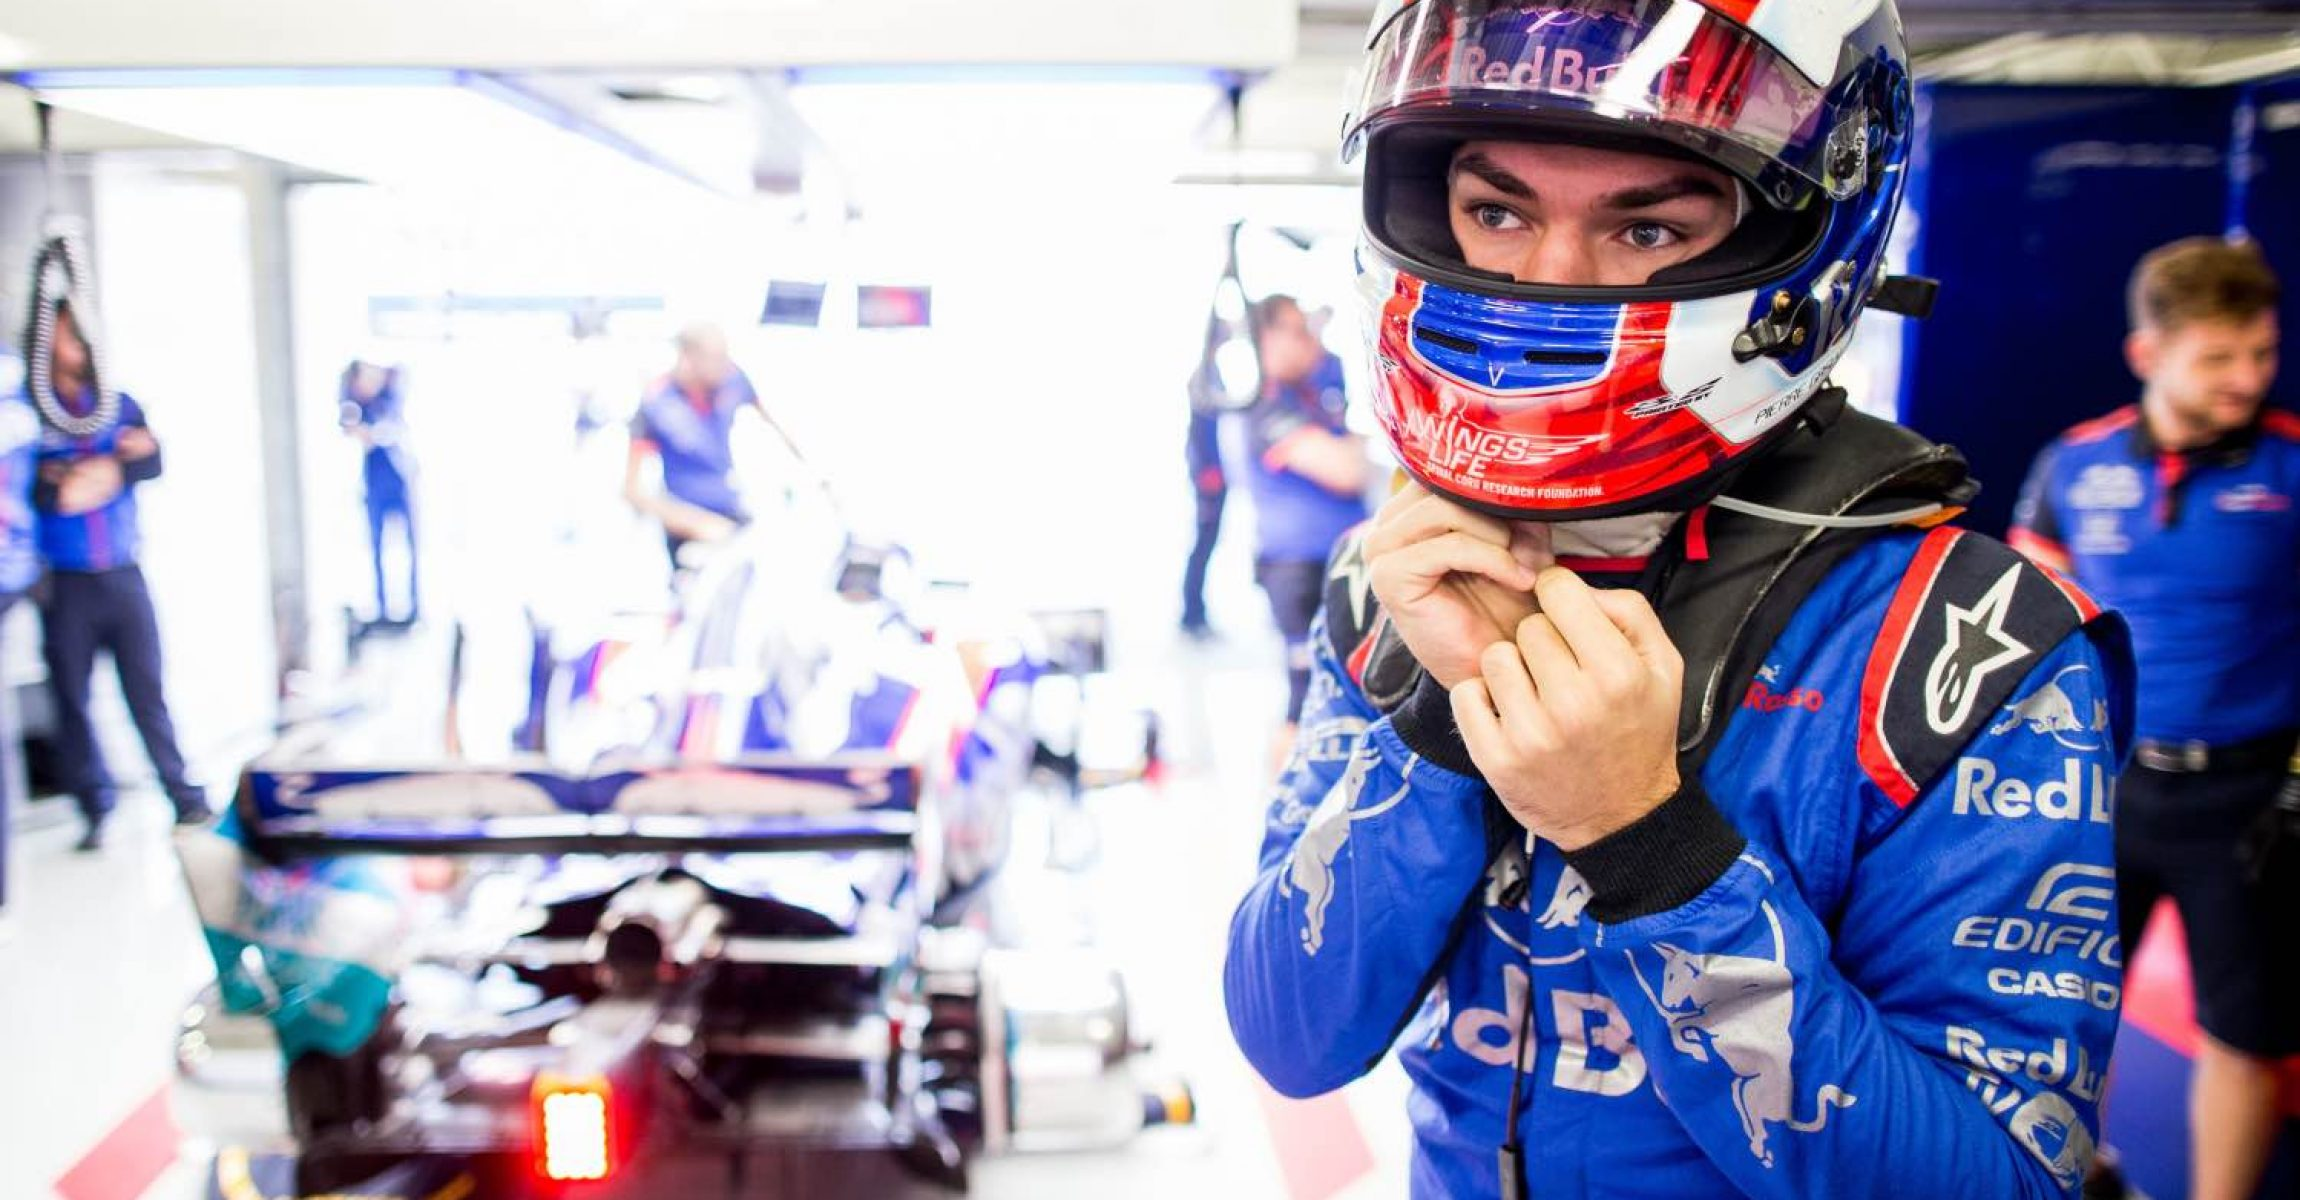 MEXICO CITY, MEXICO - OCTOBER 26:  Pierre Gasly of Scuderia Toro Rosso and France during practice for the Formula One Grand Prix of Mexico at Autodromo Hermanos Rodriguez on October 26, 2018 in Mexico City, Mexico.  (Photo by Peter Fox/Getty Images) // Getty Images / Red Bull Content Pool  // AP-1XAU9HZBH2111 // Usage for editorial use only // Please go to www.redbullcontentpool.com for further information. //